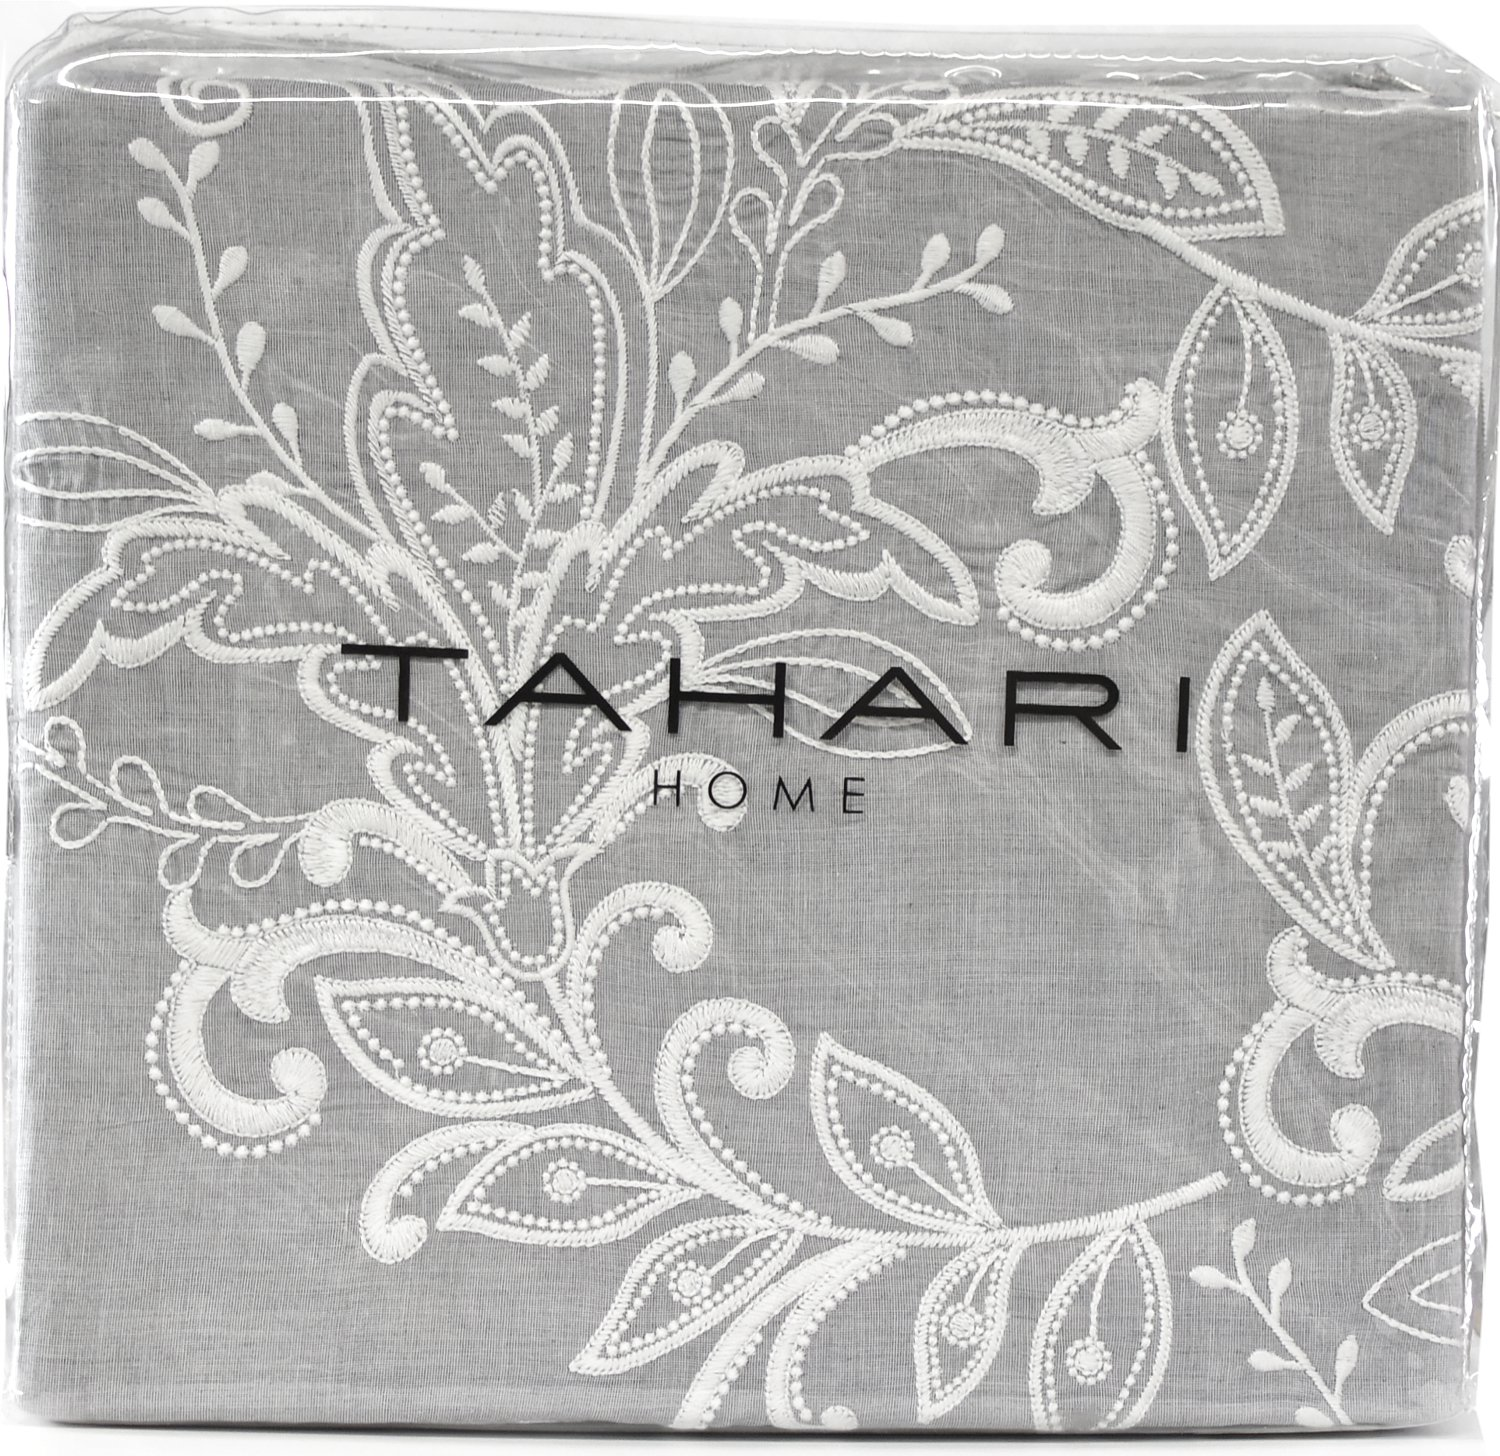 Tahari Home 100% Cotton Floral Damask 3pc Full Queen Duvet Cover Set Textured Stitching Embroidered Medallions (Grey Chambray, King)